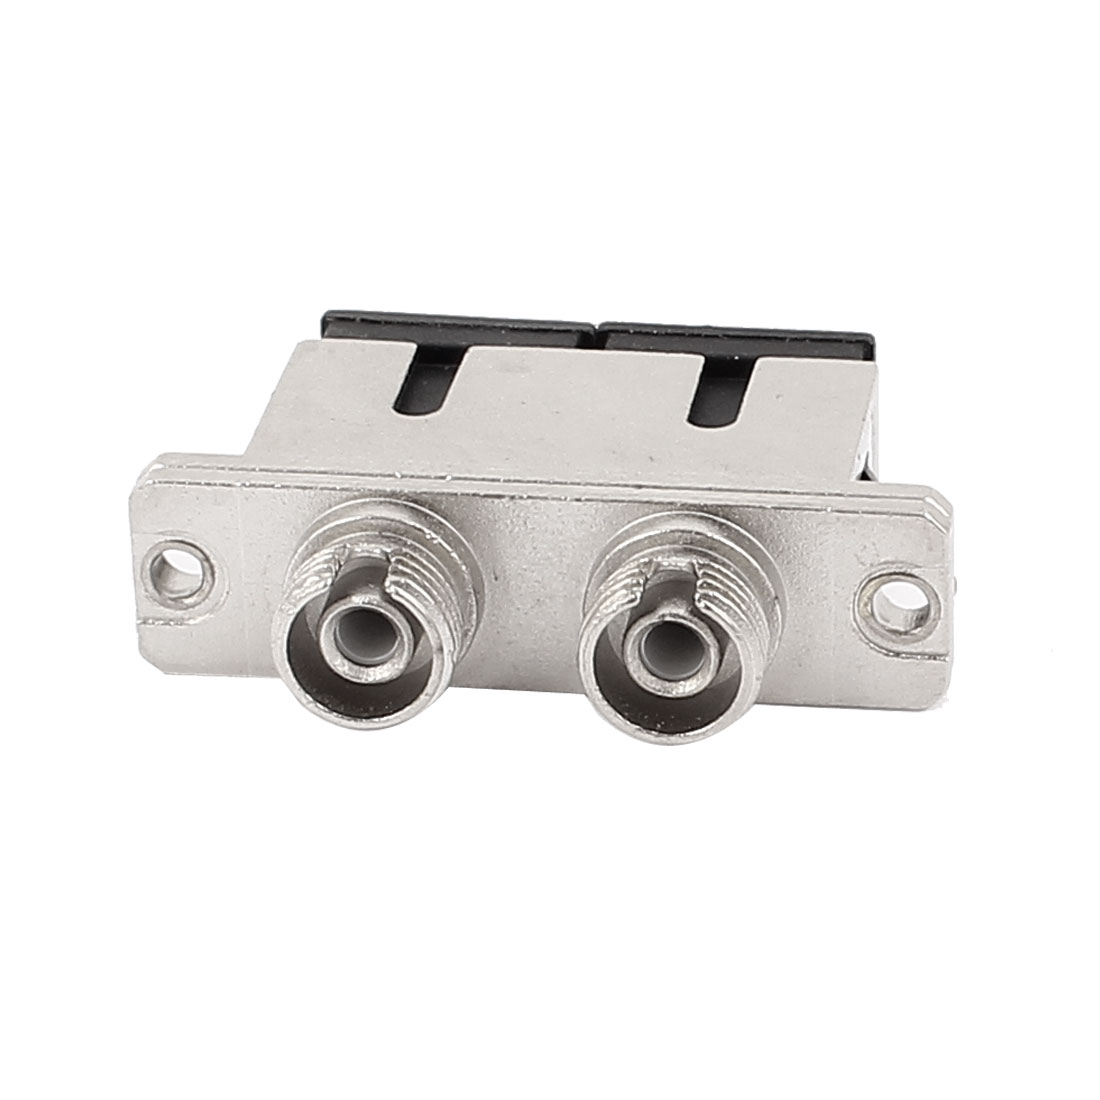 SM/MM ST-SC Duplex Fibre Coupler Flange Adapter Optical Fiber Connector